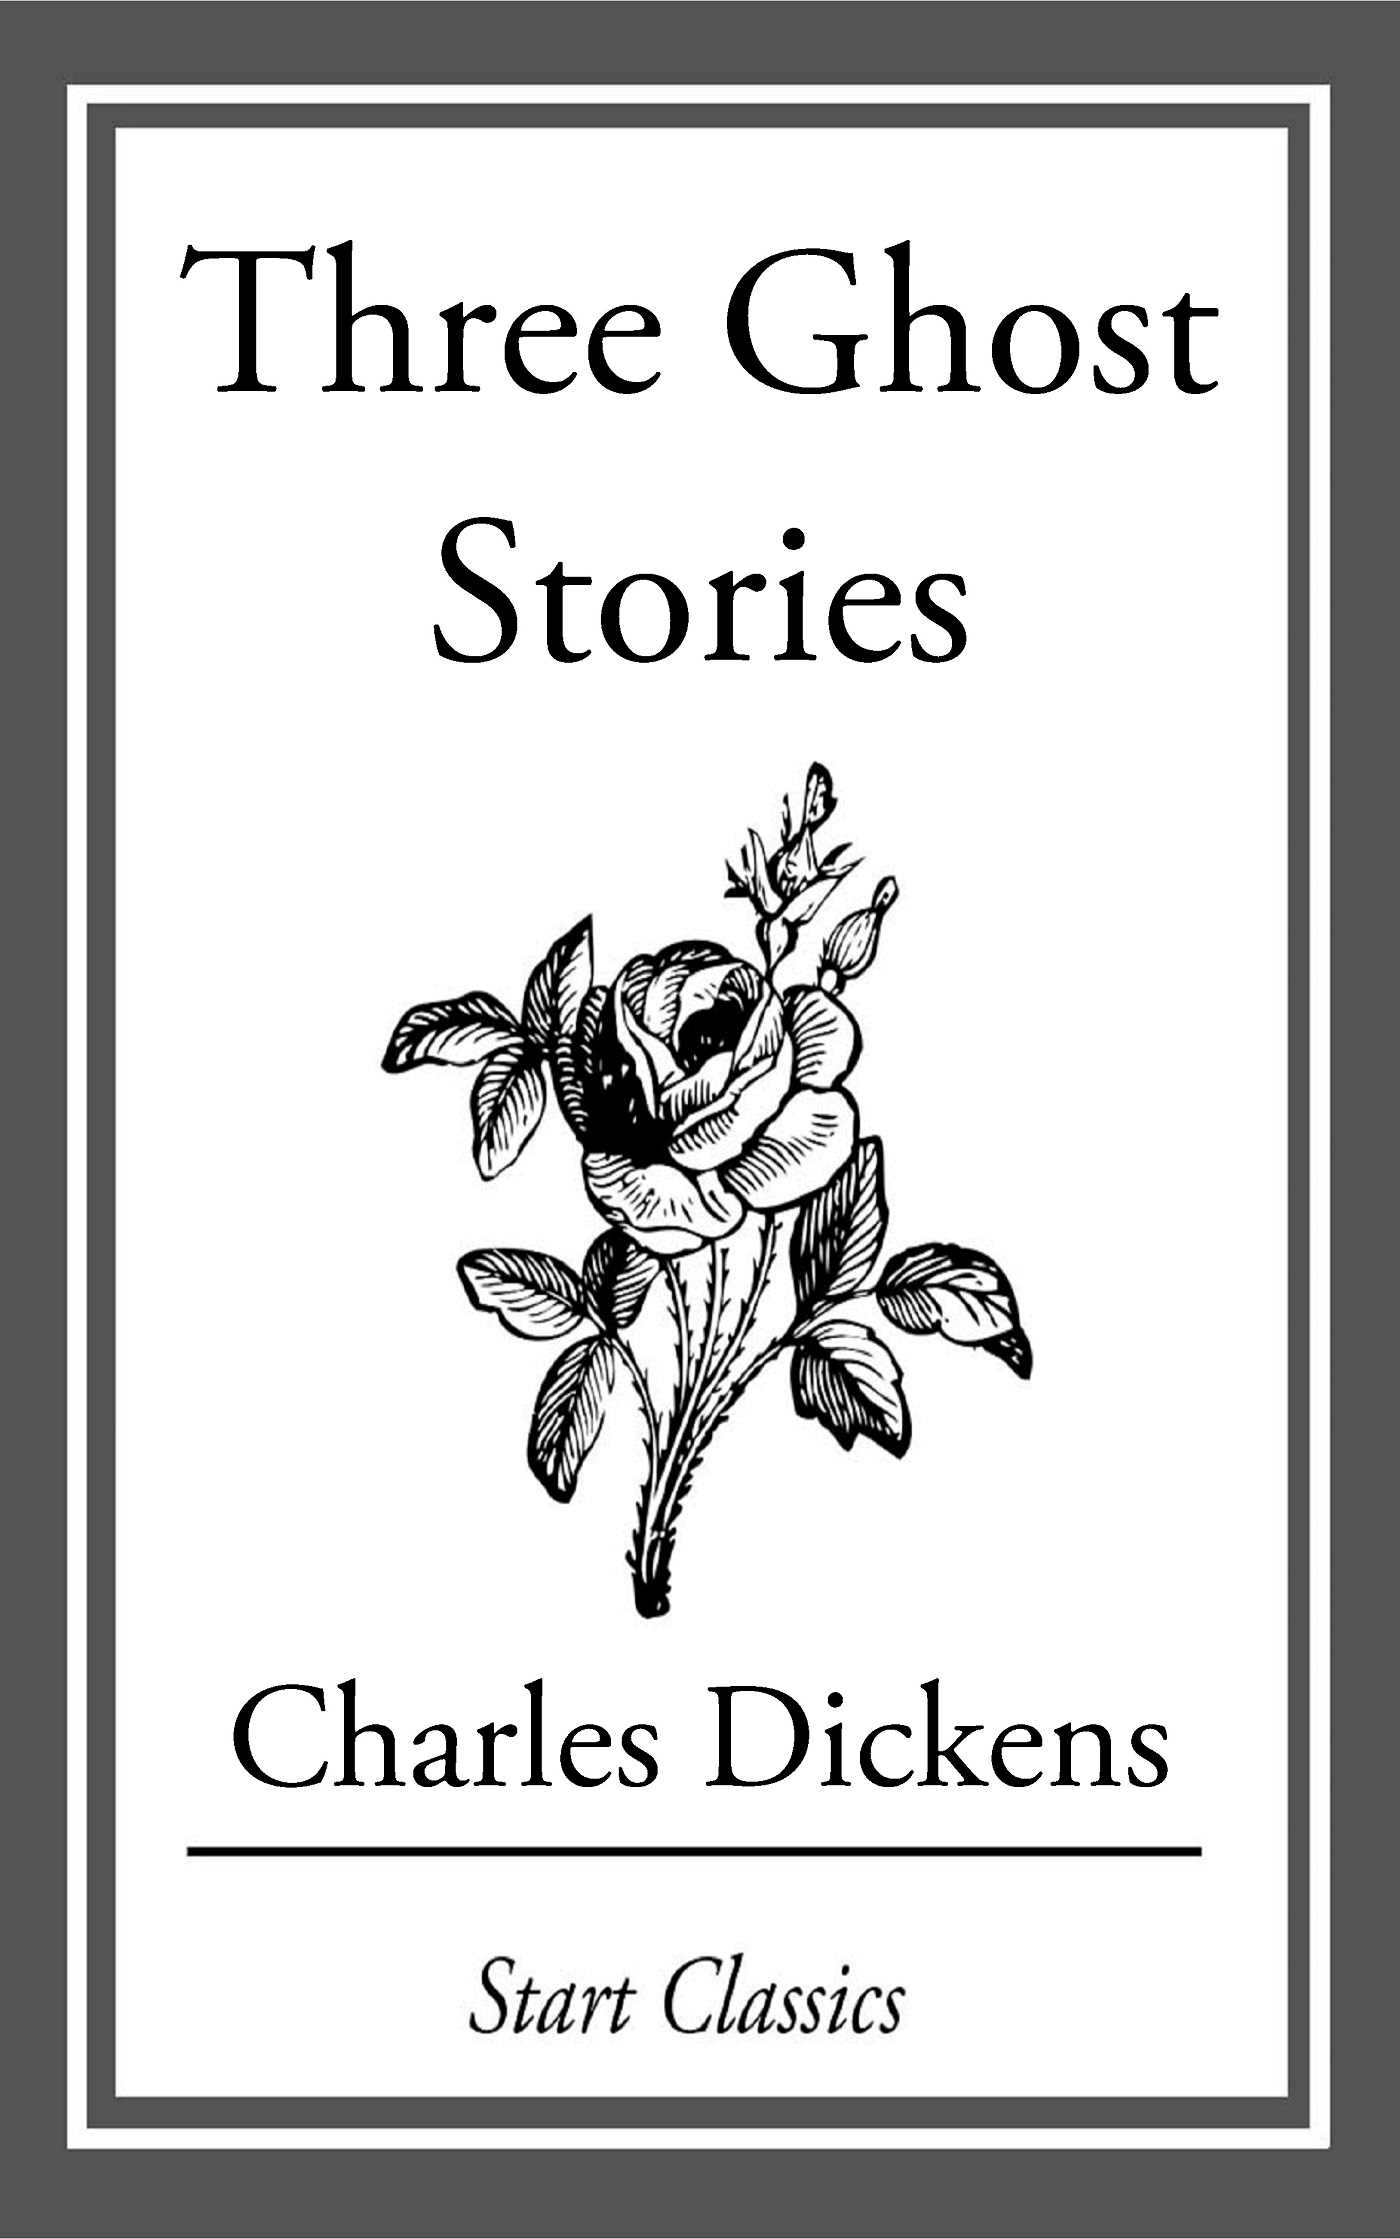 Three Ghost Stories eBook by Charles Dickens | Official Publisher